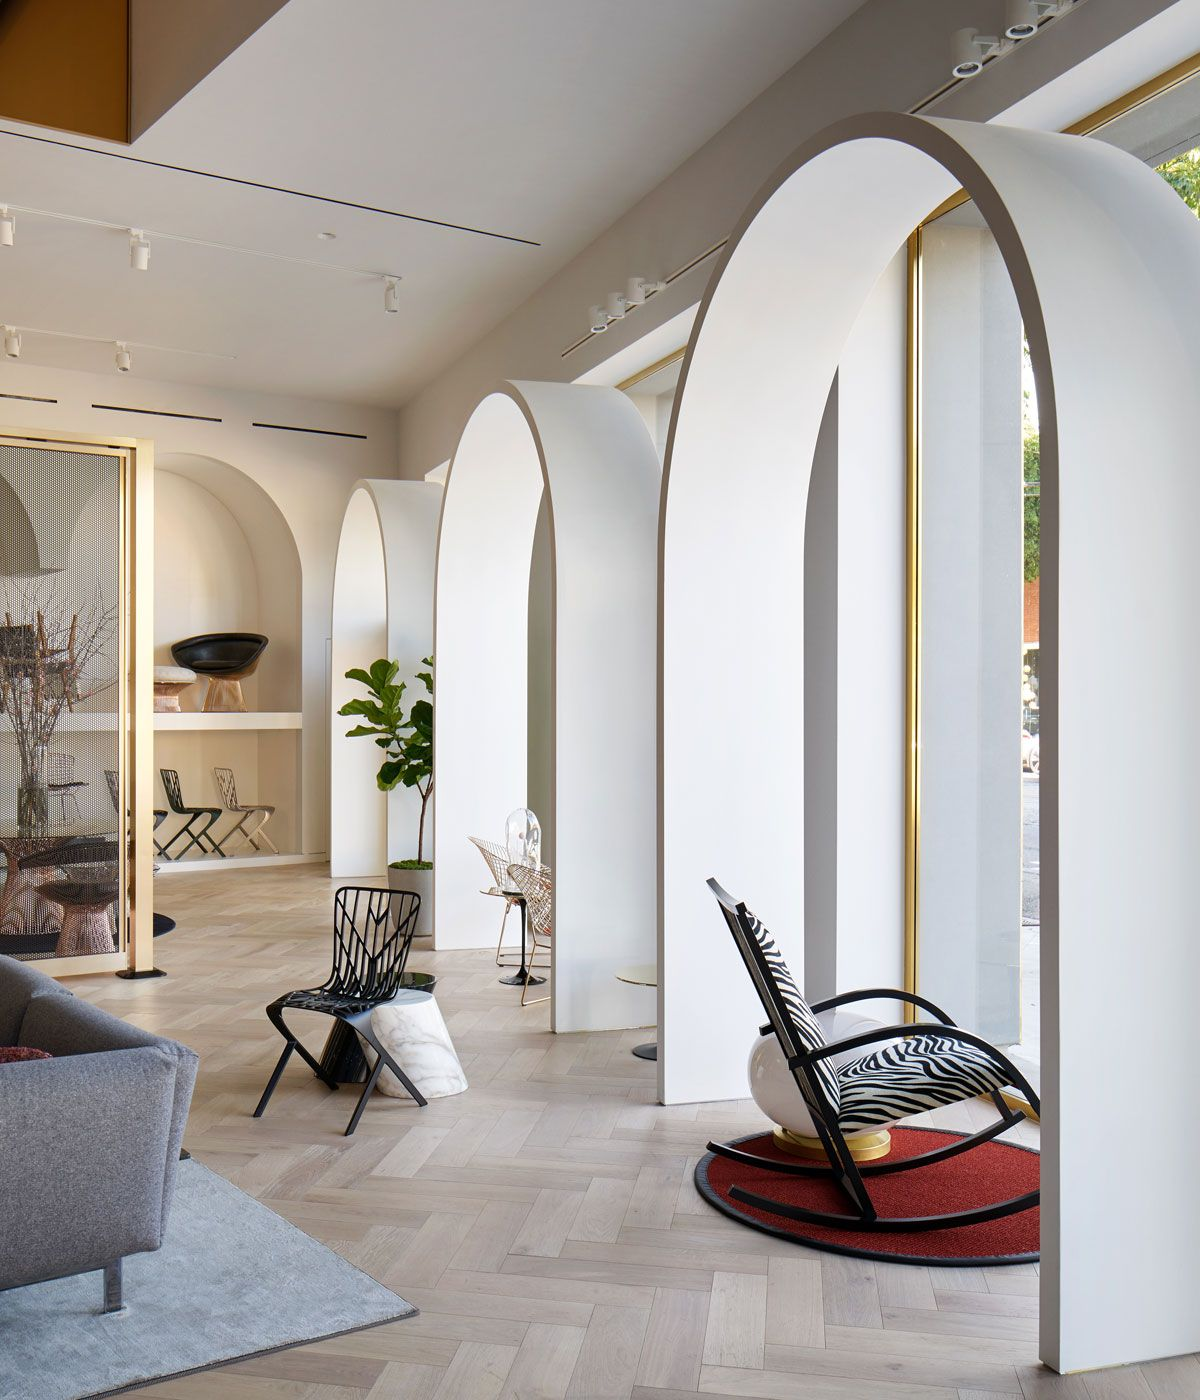 Knoll Home Design Shop: Knoll Nods To Moorish Architecture In New LA Store By